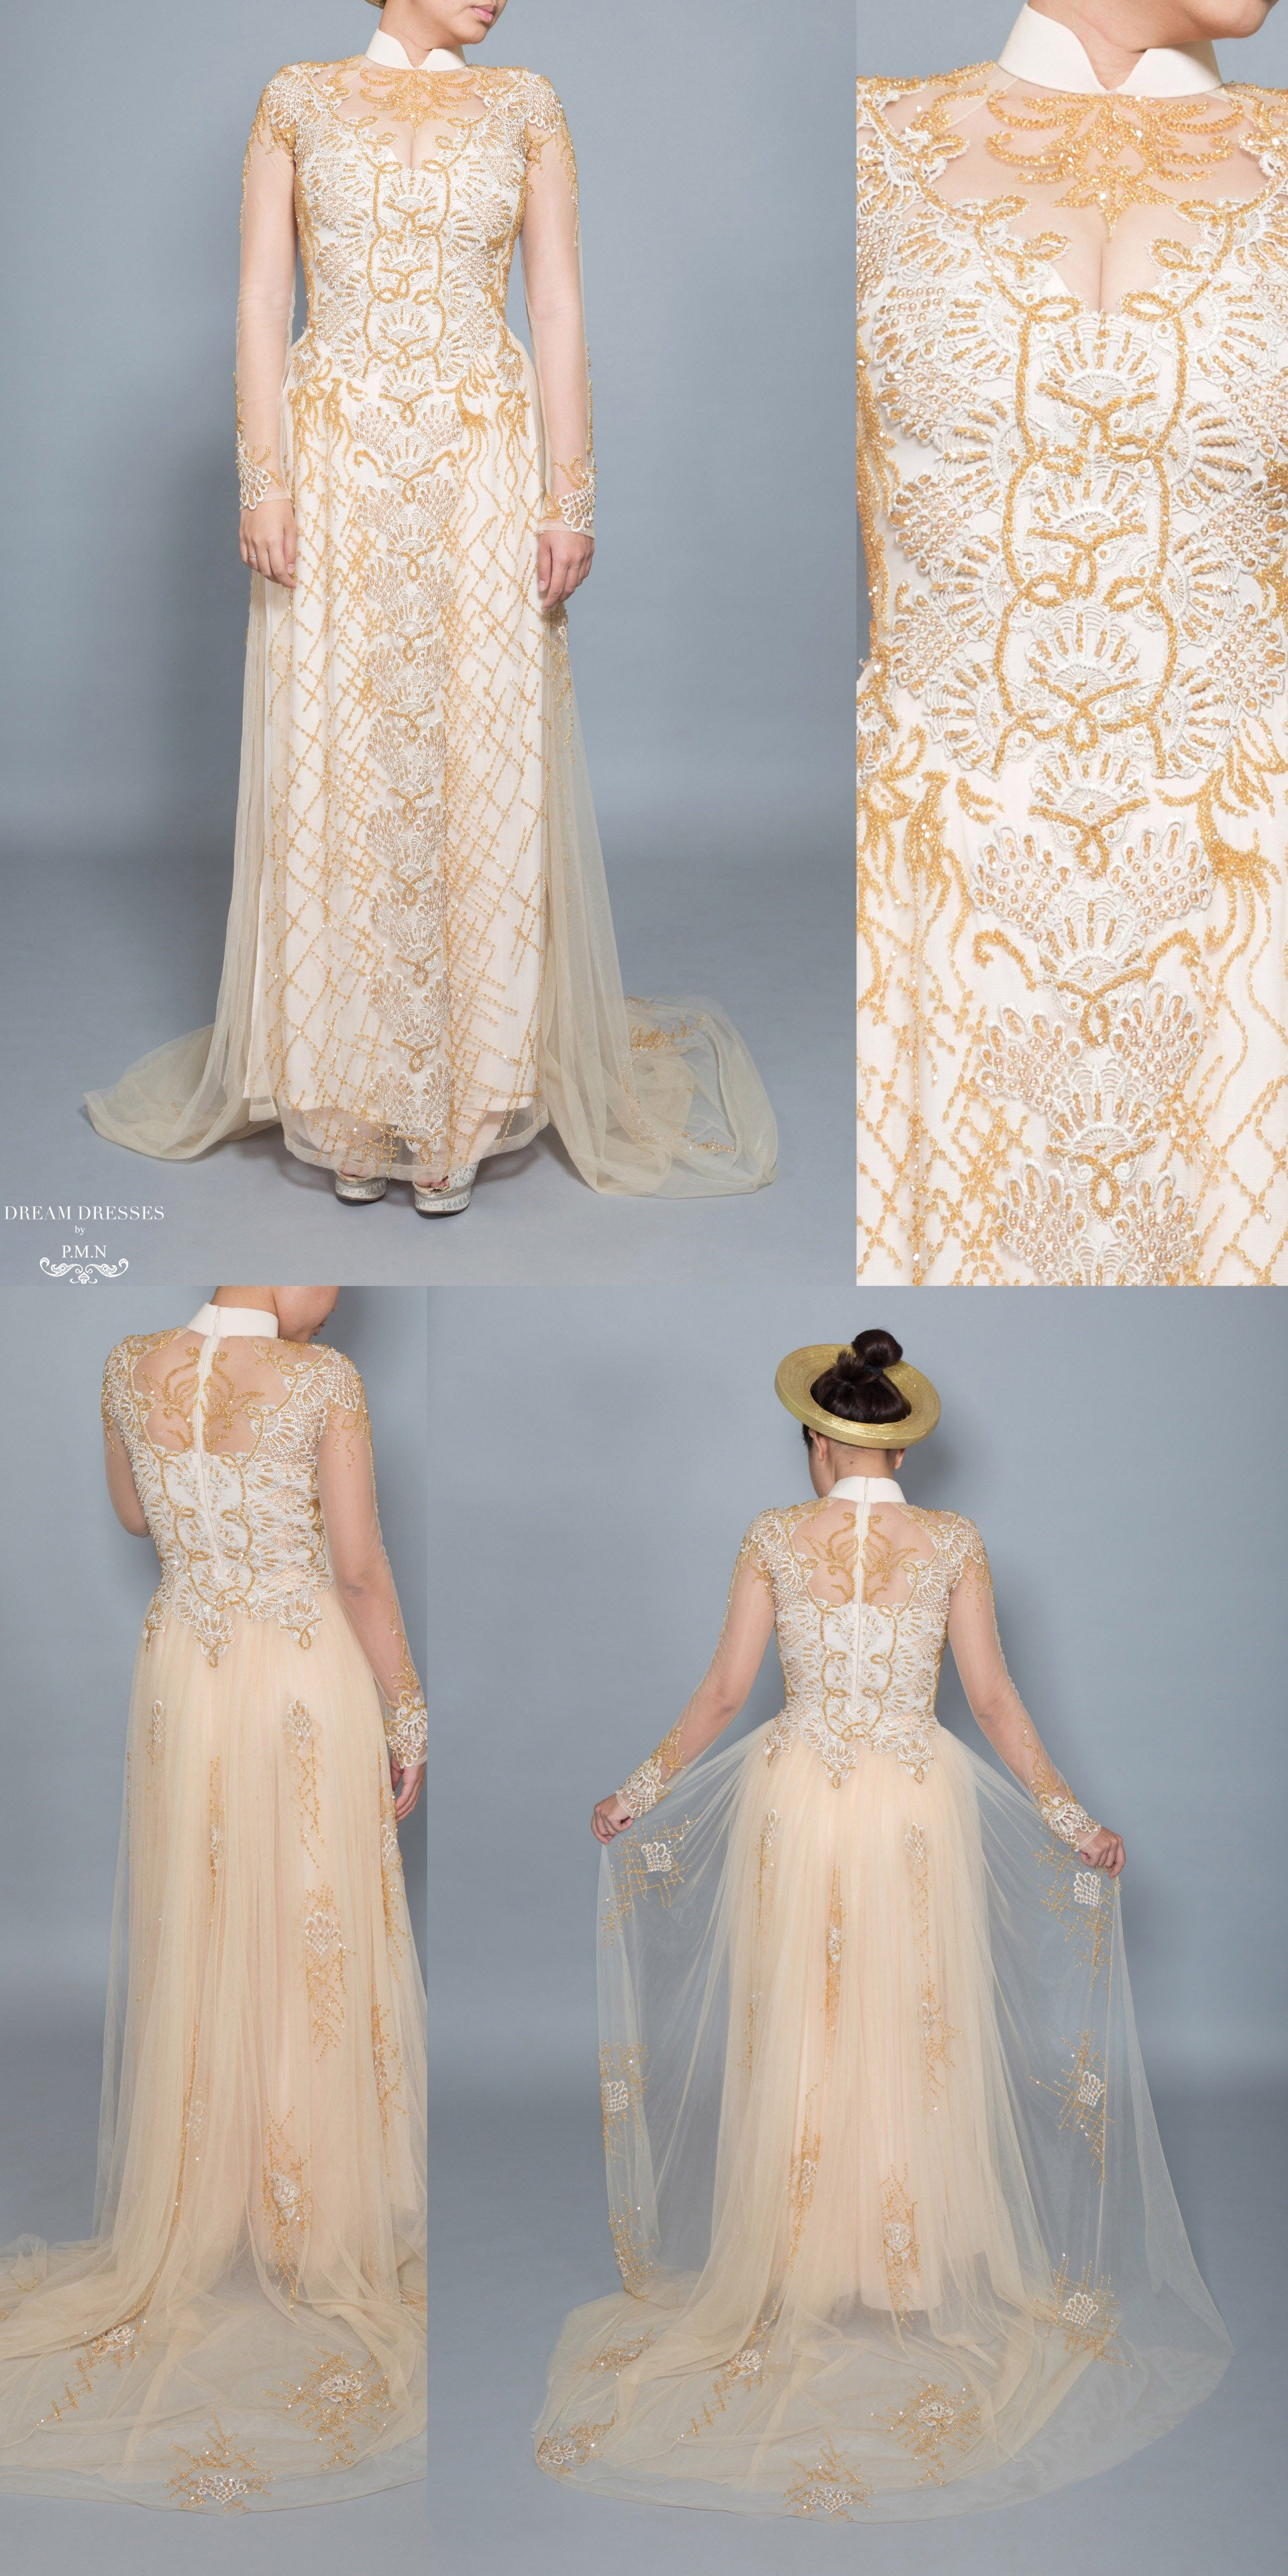 Gold Ao Dai | Vietnamese Bridal Dress with Embellishment (#HELGA)